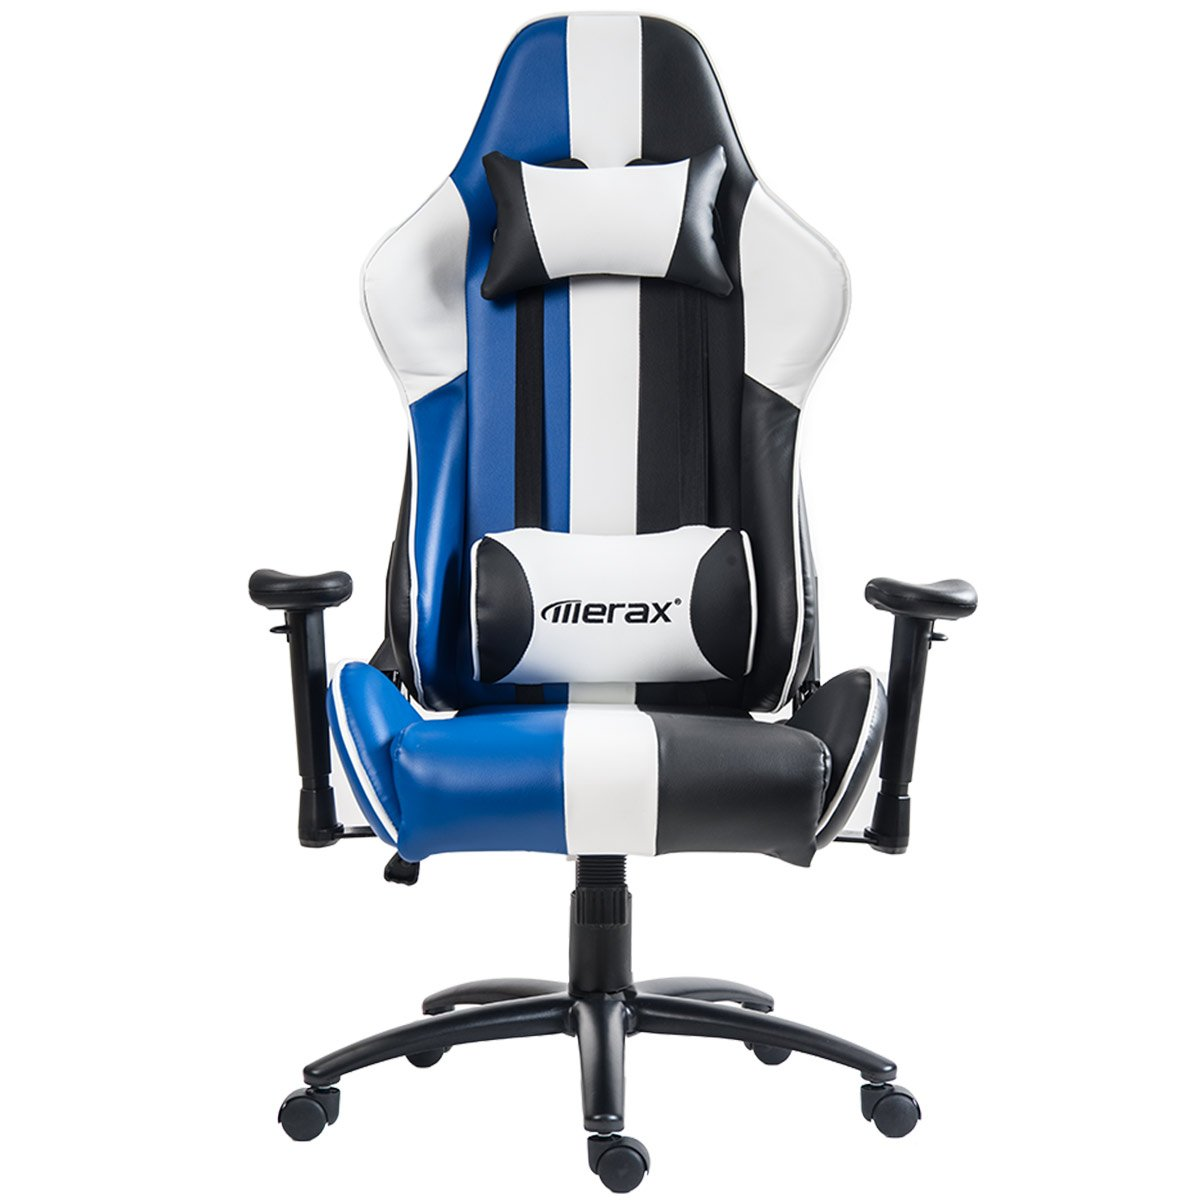 Merax Justice Series Racing Style Gaming Chair Ergonomic High Back PU Leather (Blue)